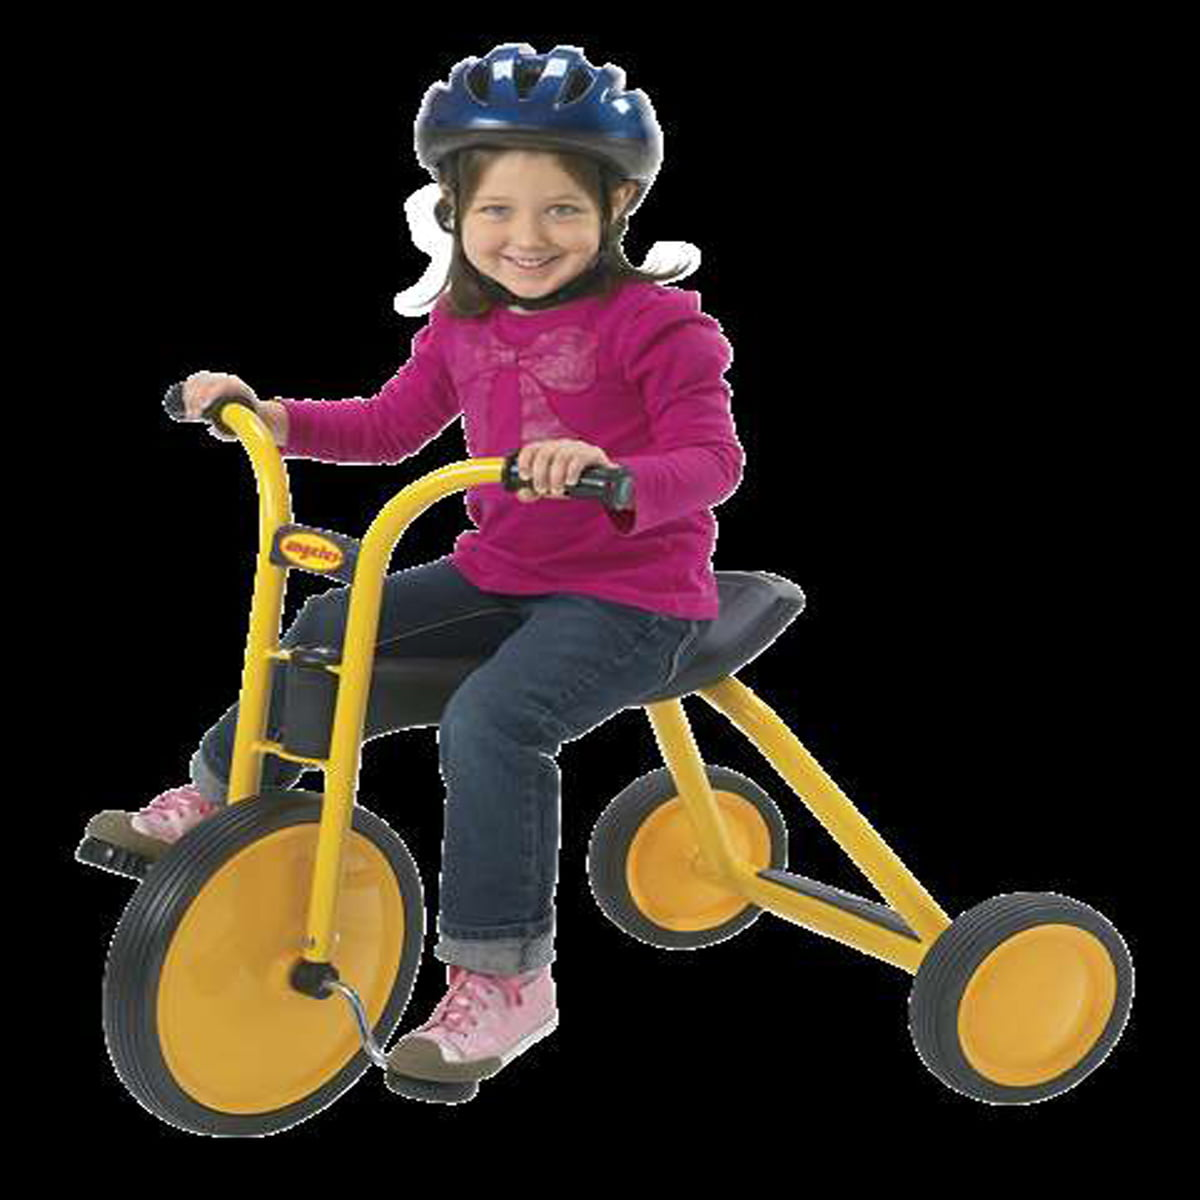 Angeles Maxi Trike 16 Inches